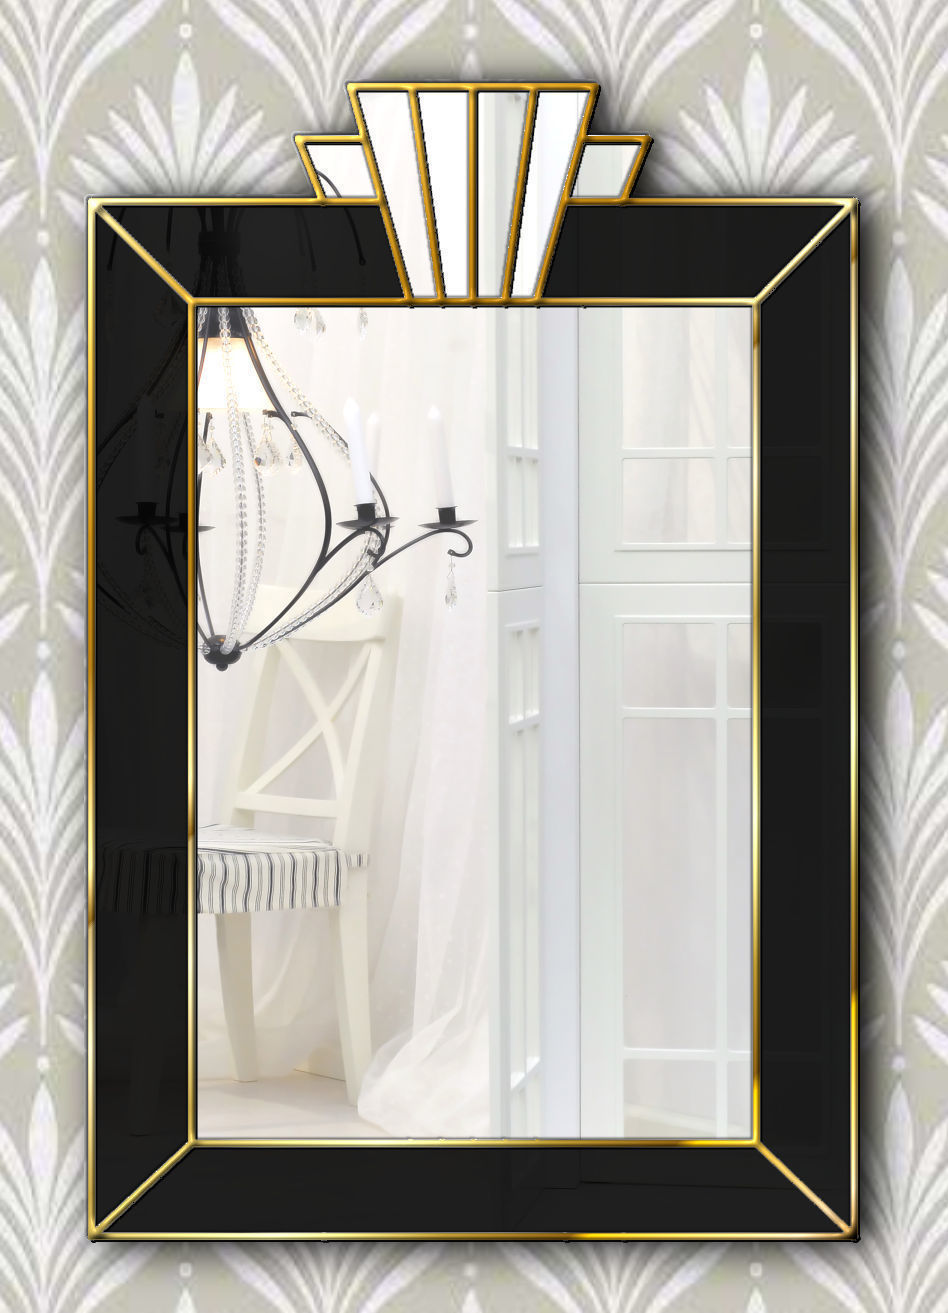 Vienna Royal Original Handcrafted Art Deco Wall Mirror With Black Glass Gold Trim Phillip Orr Vinterior